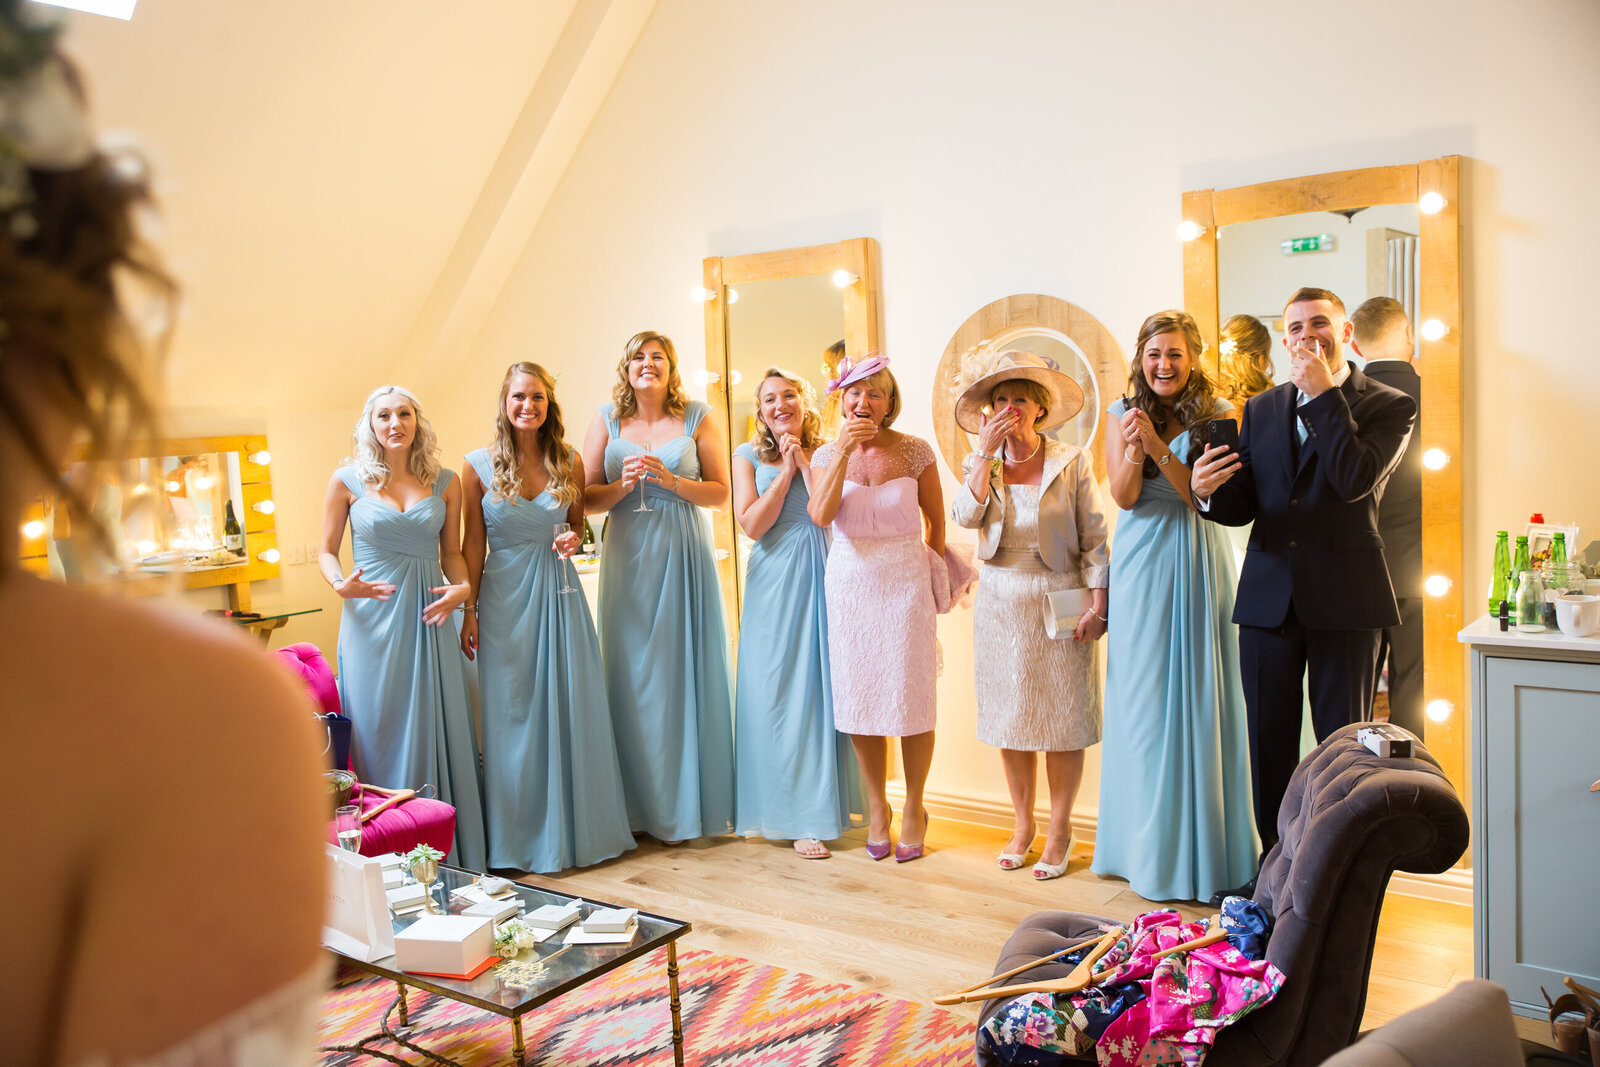 Wedding photography of bridesmaids seeing bride in wedding dress for the first time at Millbridge Court Surrey. Photography by Lynsey Grace Photography